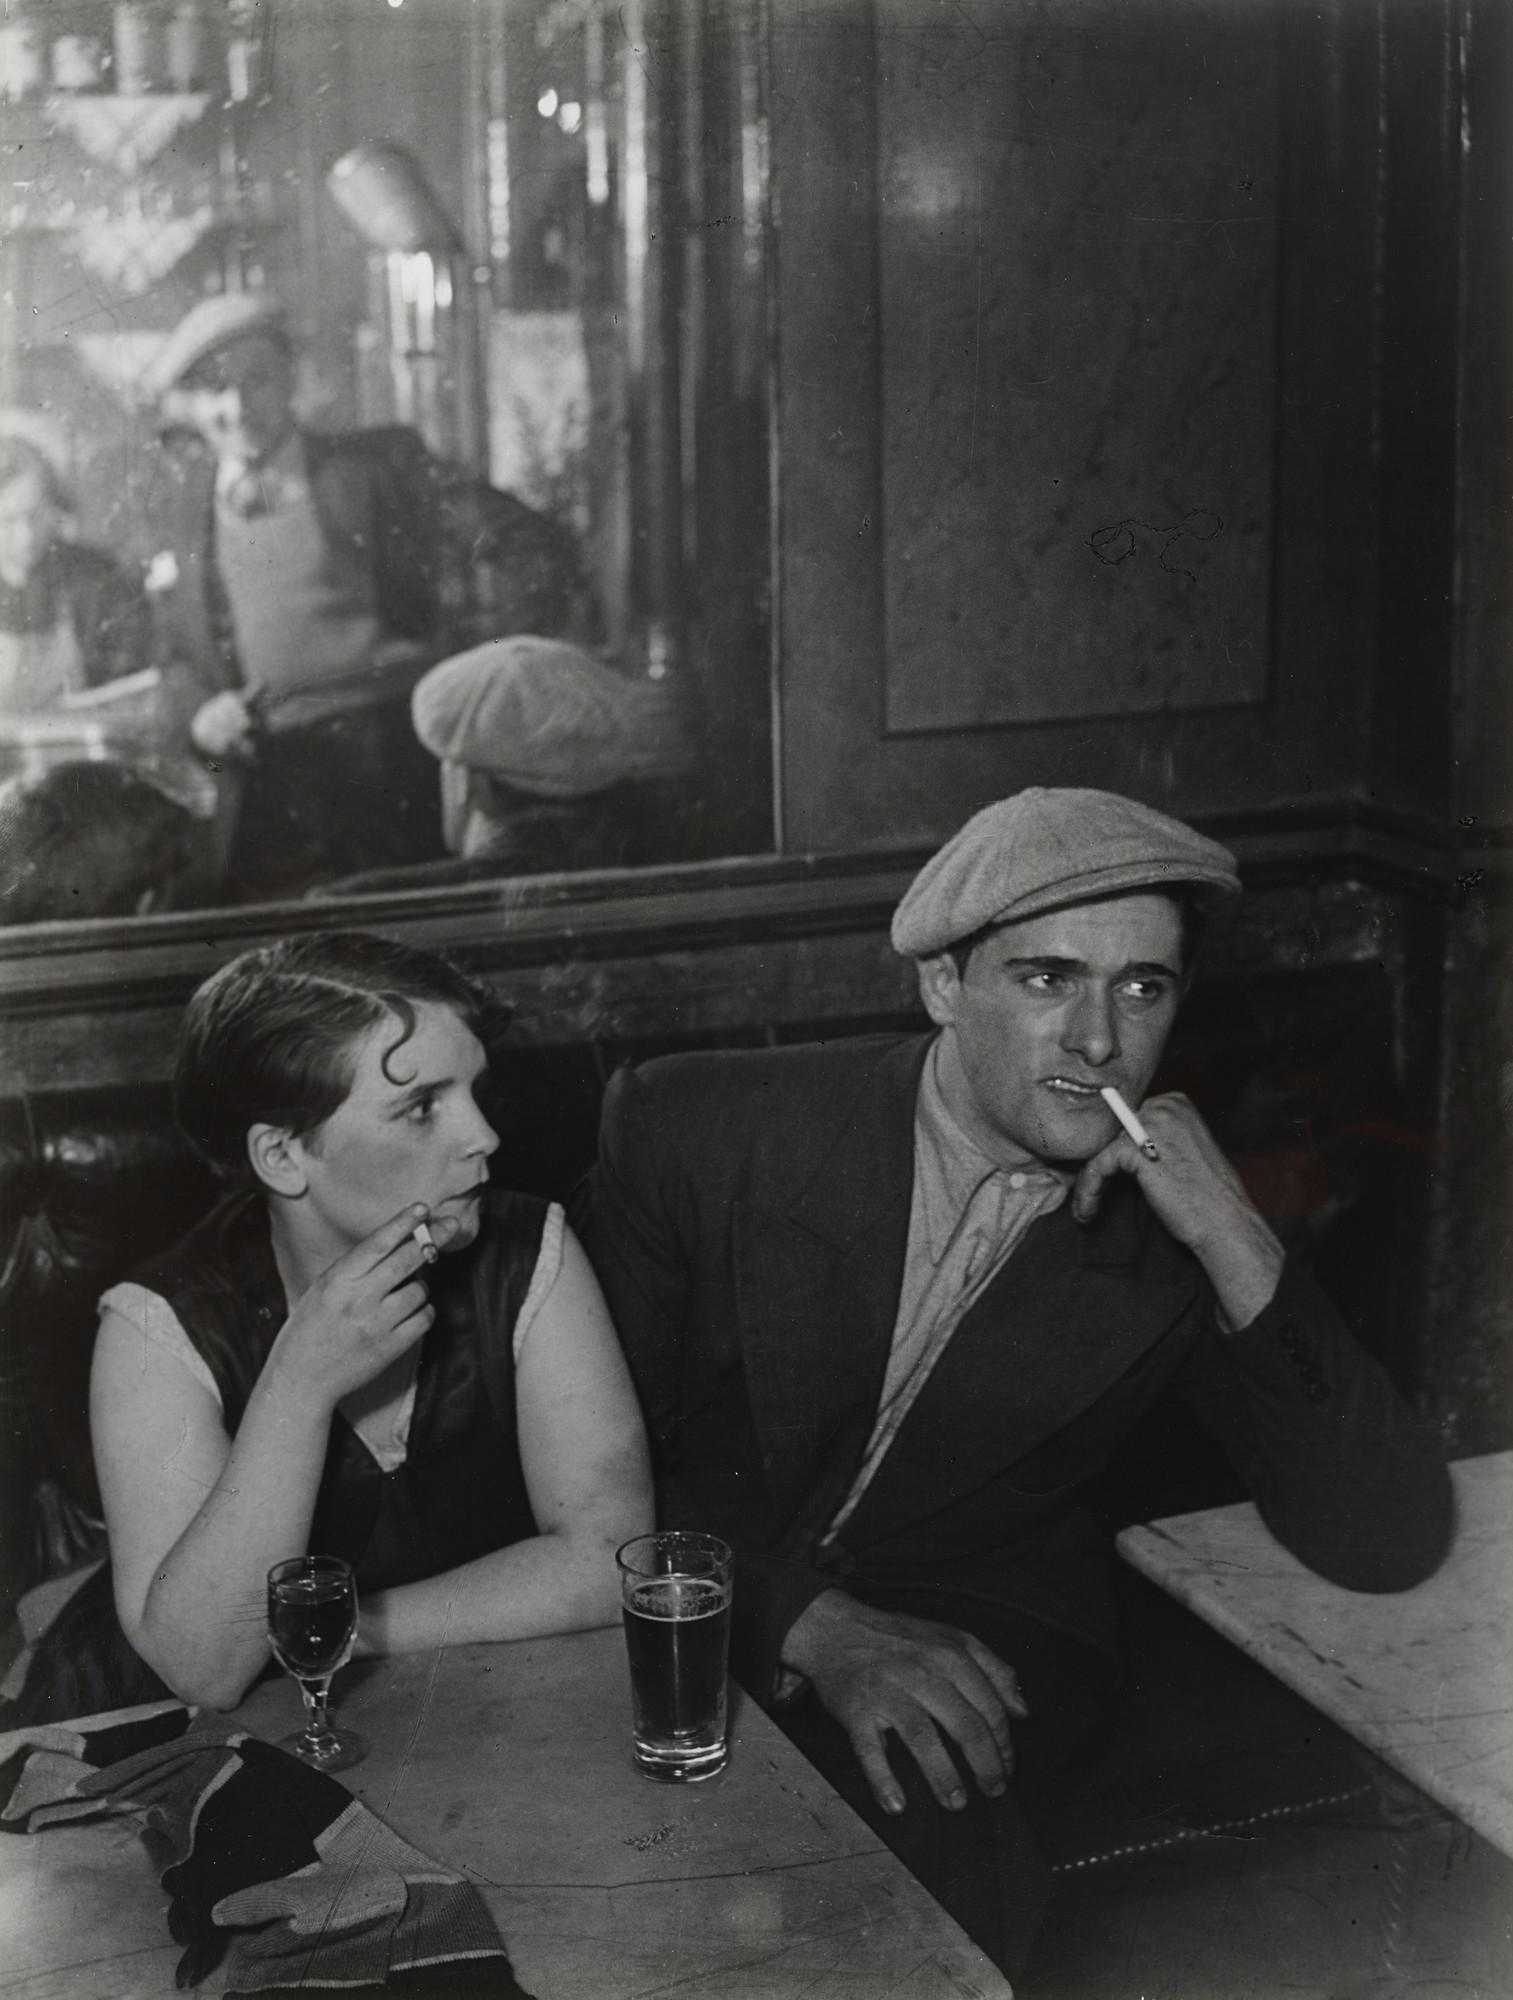 Brassaï (Gyula Halász). Couple in Bar, rue Saint-Denis, Paris. c. 1931